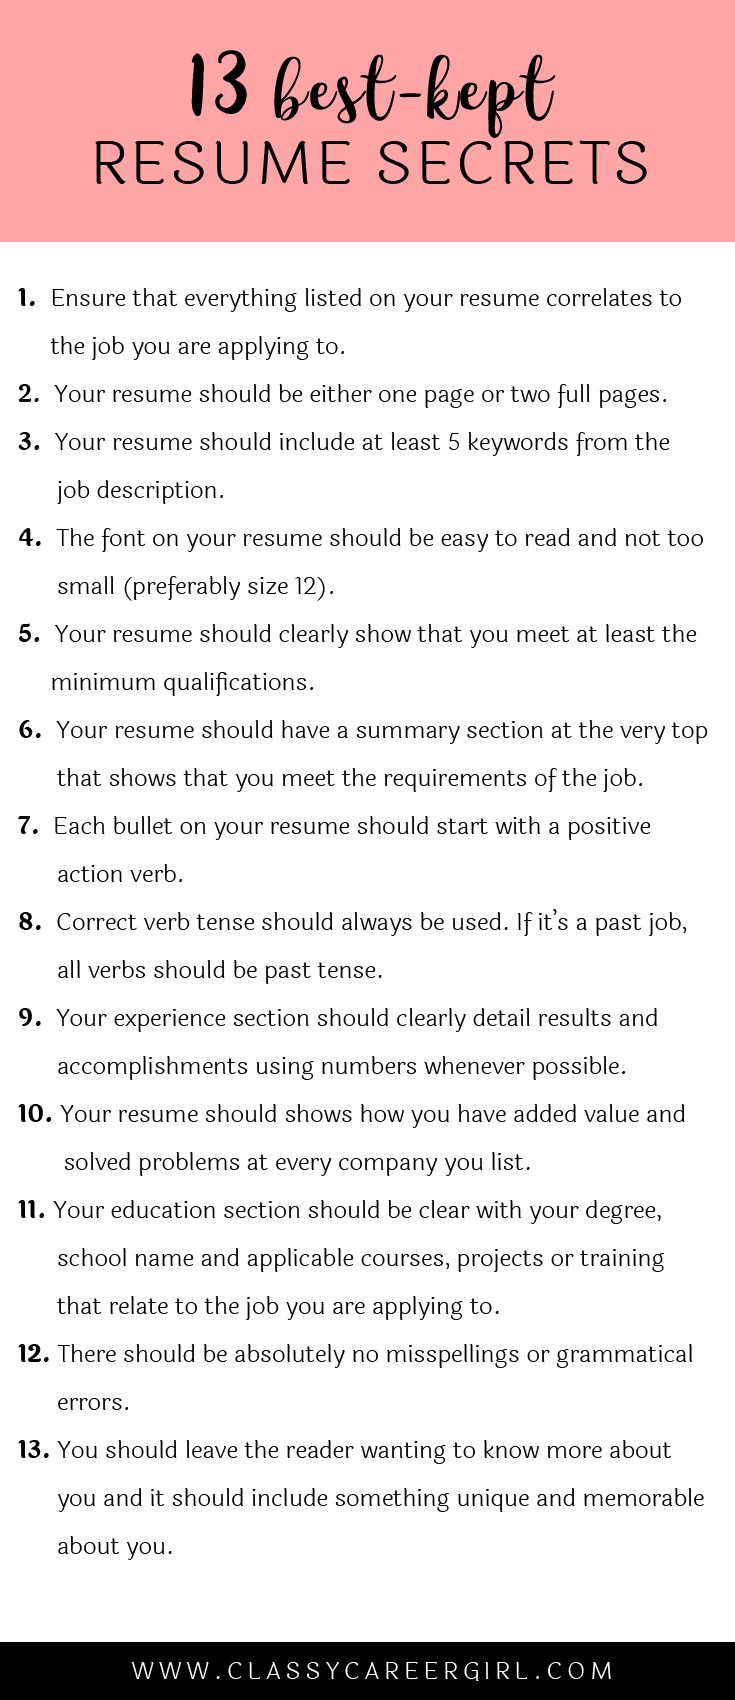 Opposenewapstandardsus  Marvelous  Ideas About Resume On Pinterest  Cv Format Resume Cv And  With Remarkable Some Hiring Managers Will Toss Your Resume Out If You Dont Know These  With Archaic Picture Of A Resume Also Resume Build In Addition Example Of Skills On Resume And Resume Size As Well As Hobbies And Interests Resume Additionally Resume After College From Pinterestcom With Opposenewapstandardsus  Remarkable  Ideas About Resume On Pinterest  Cv Format Resume Cv And  With Archaic Some Hiring Managers Will Toss Your Resume Out If You Dont Know These  And Marvelous Picture Of A Resume Also Resume Build In Addition Example Of Skills On Resume From Pinterestcom